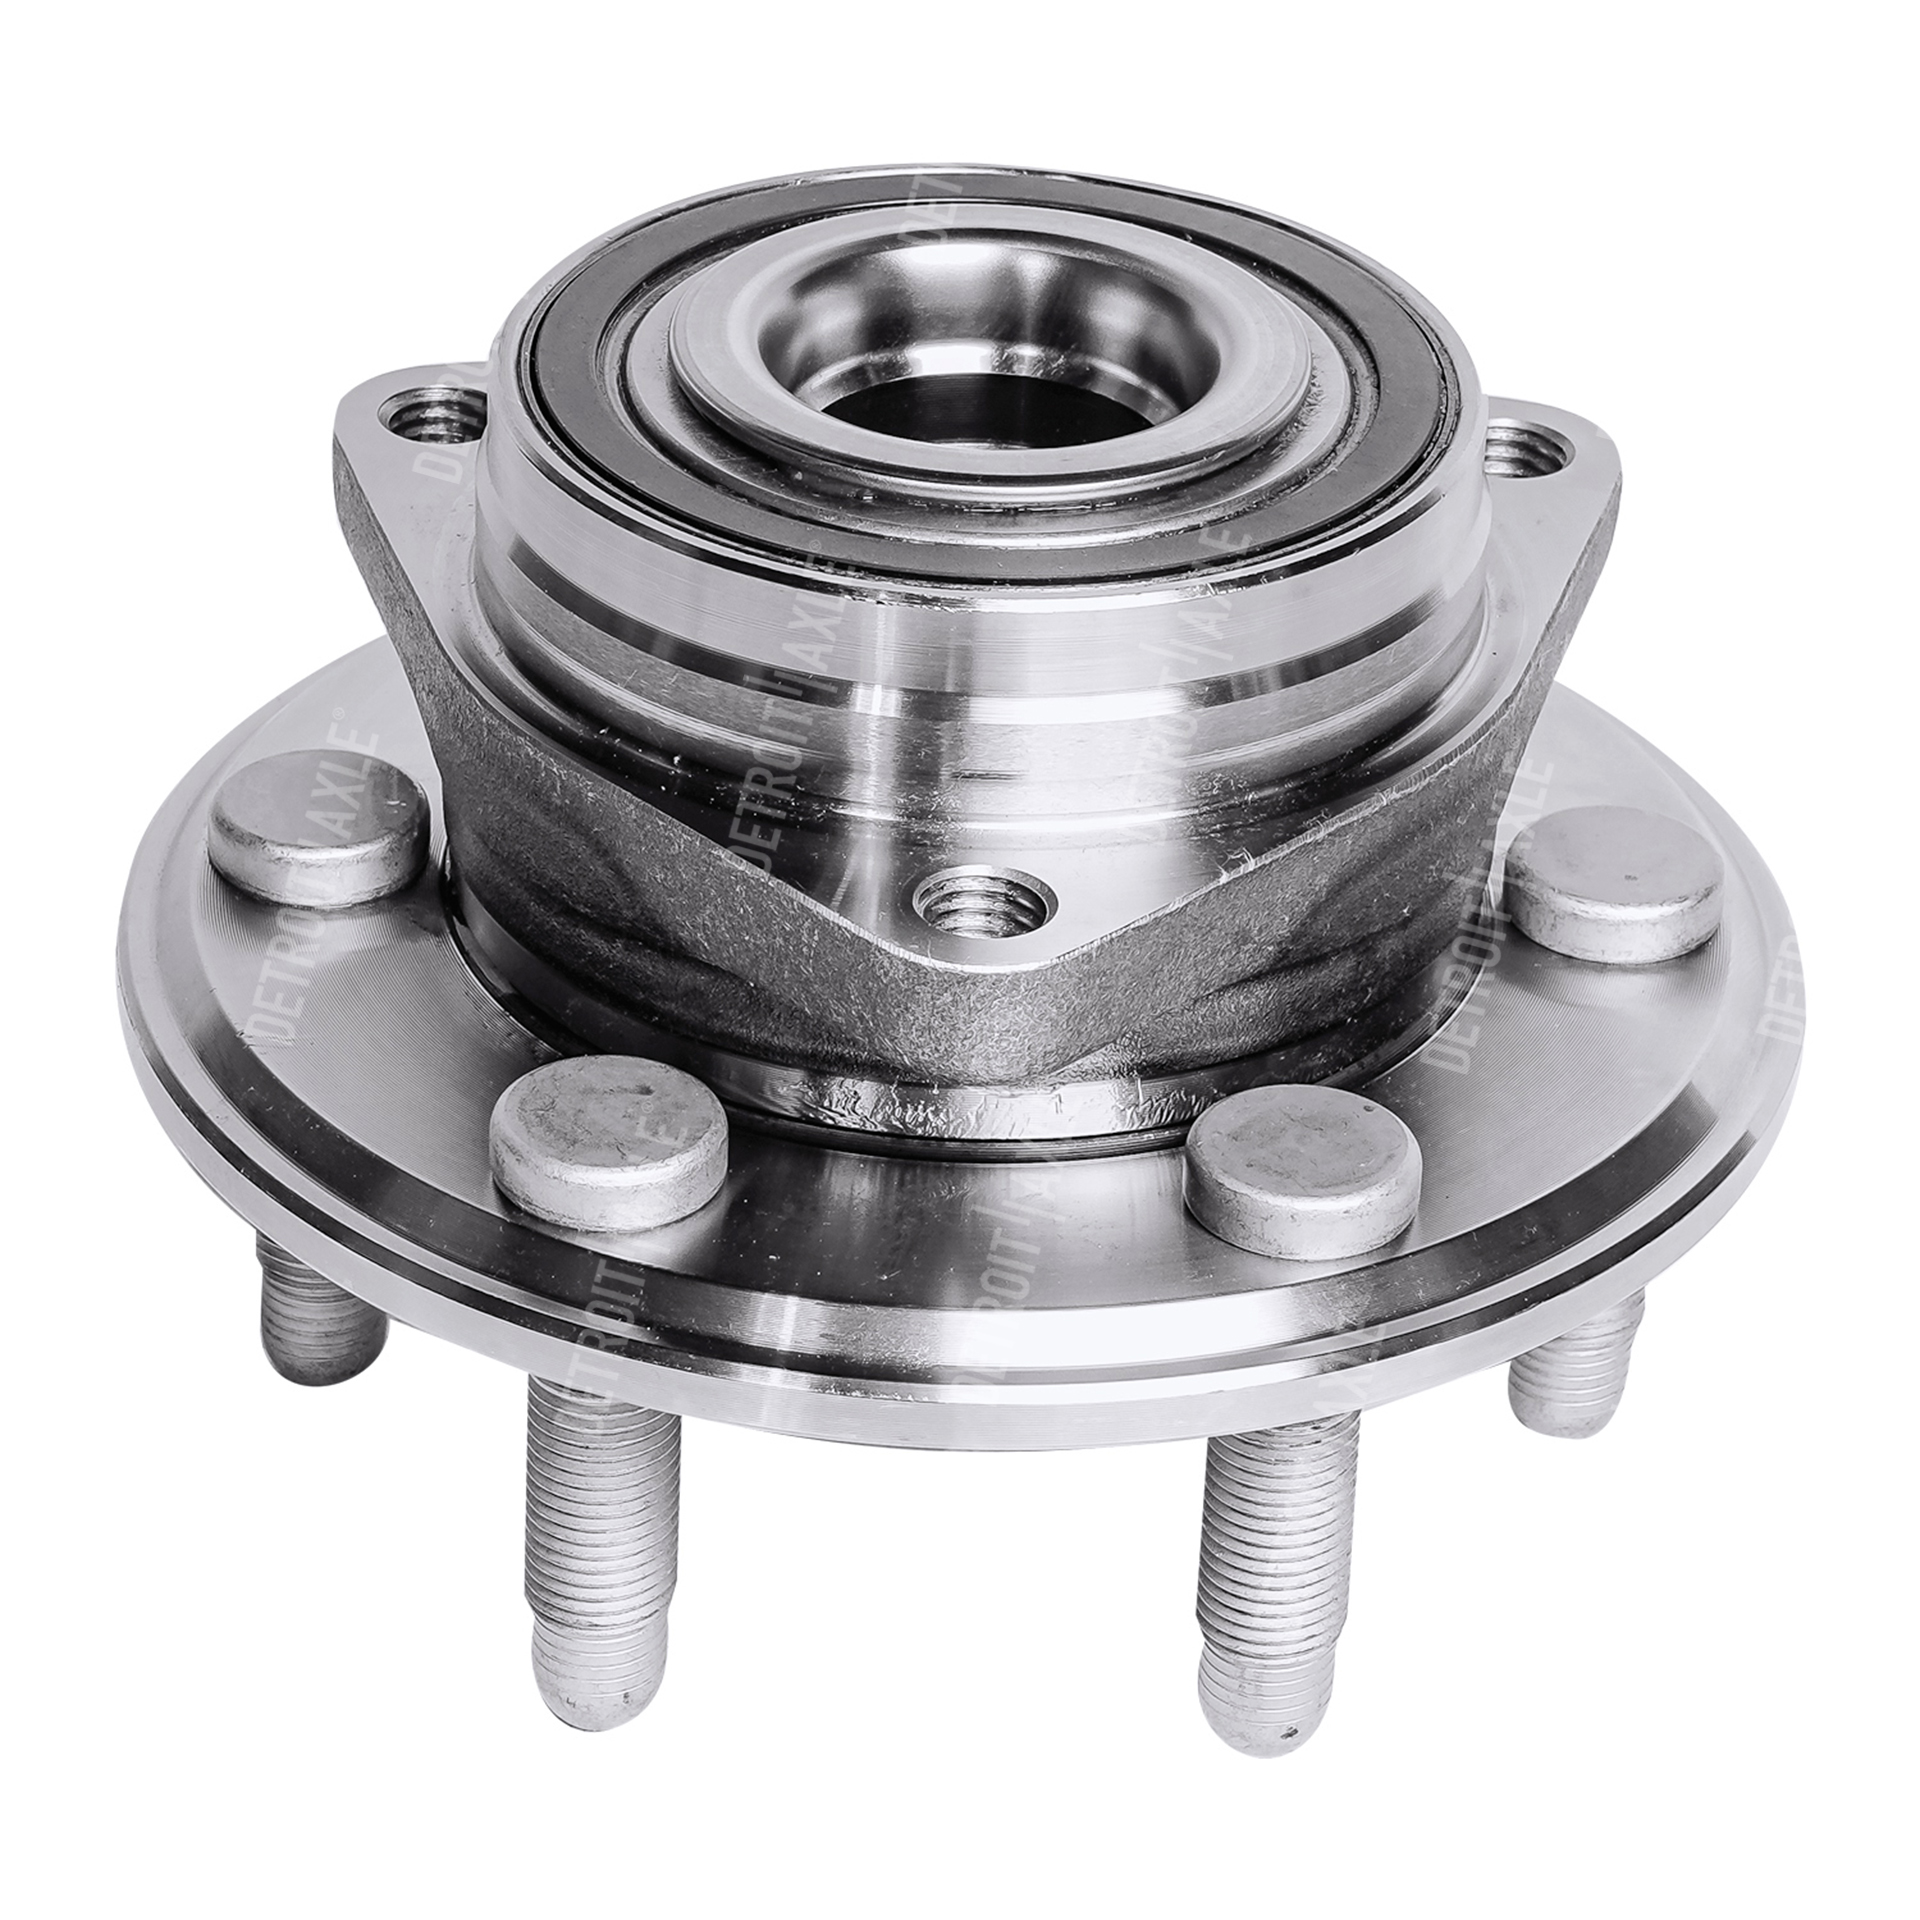 hight resolution of front or rear wheel hub and bearing assembly driver or passenger side